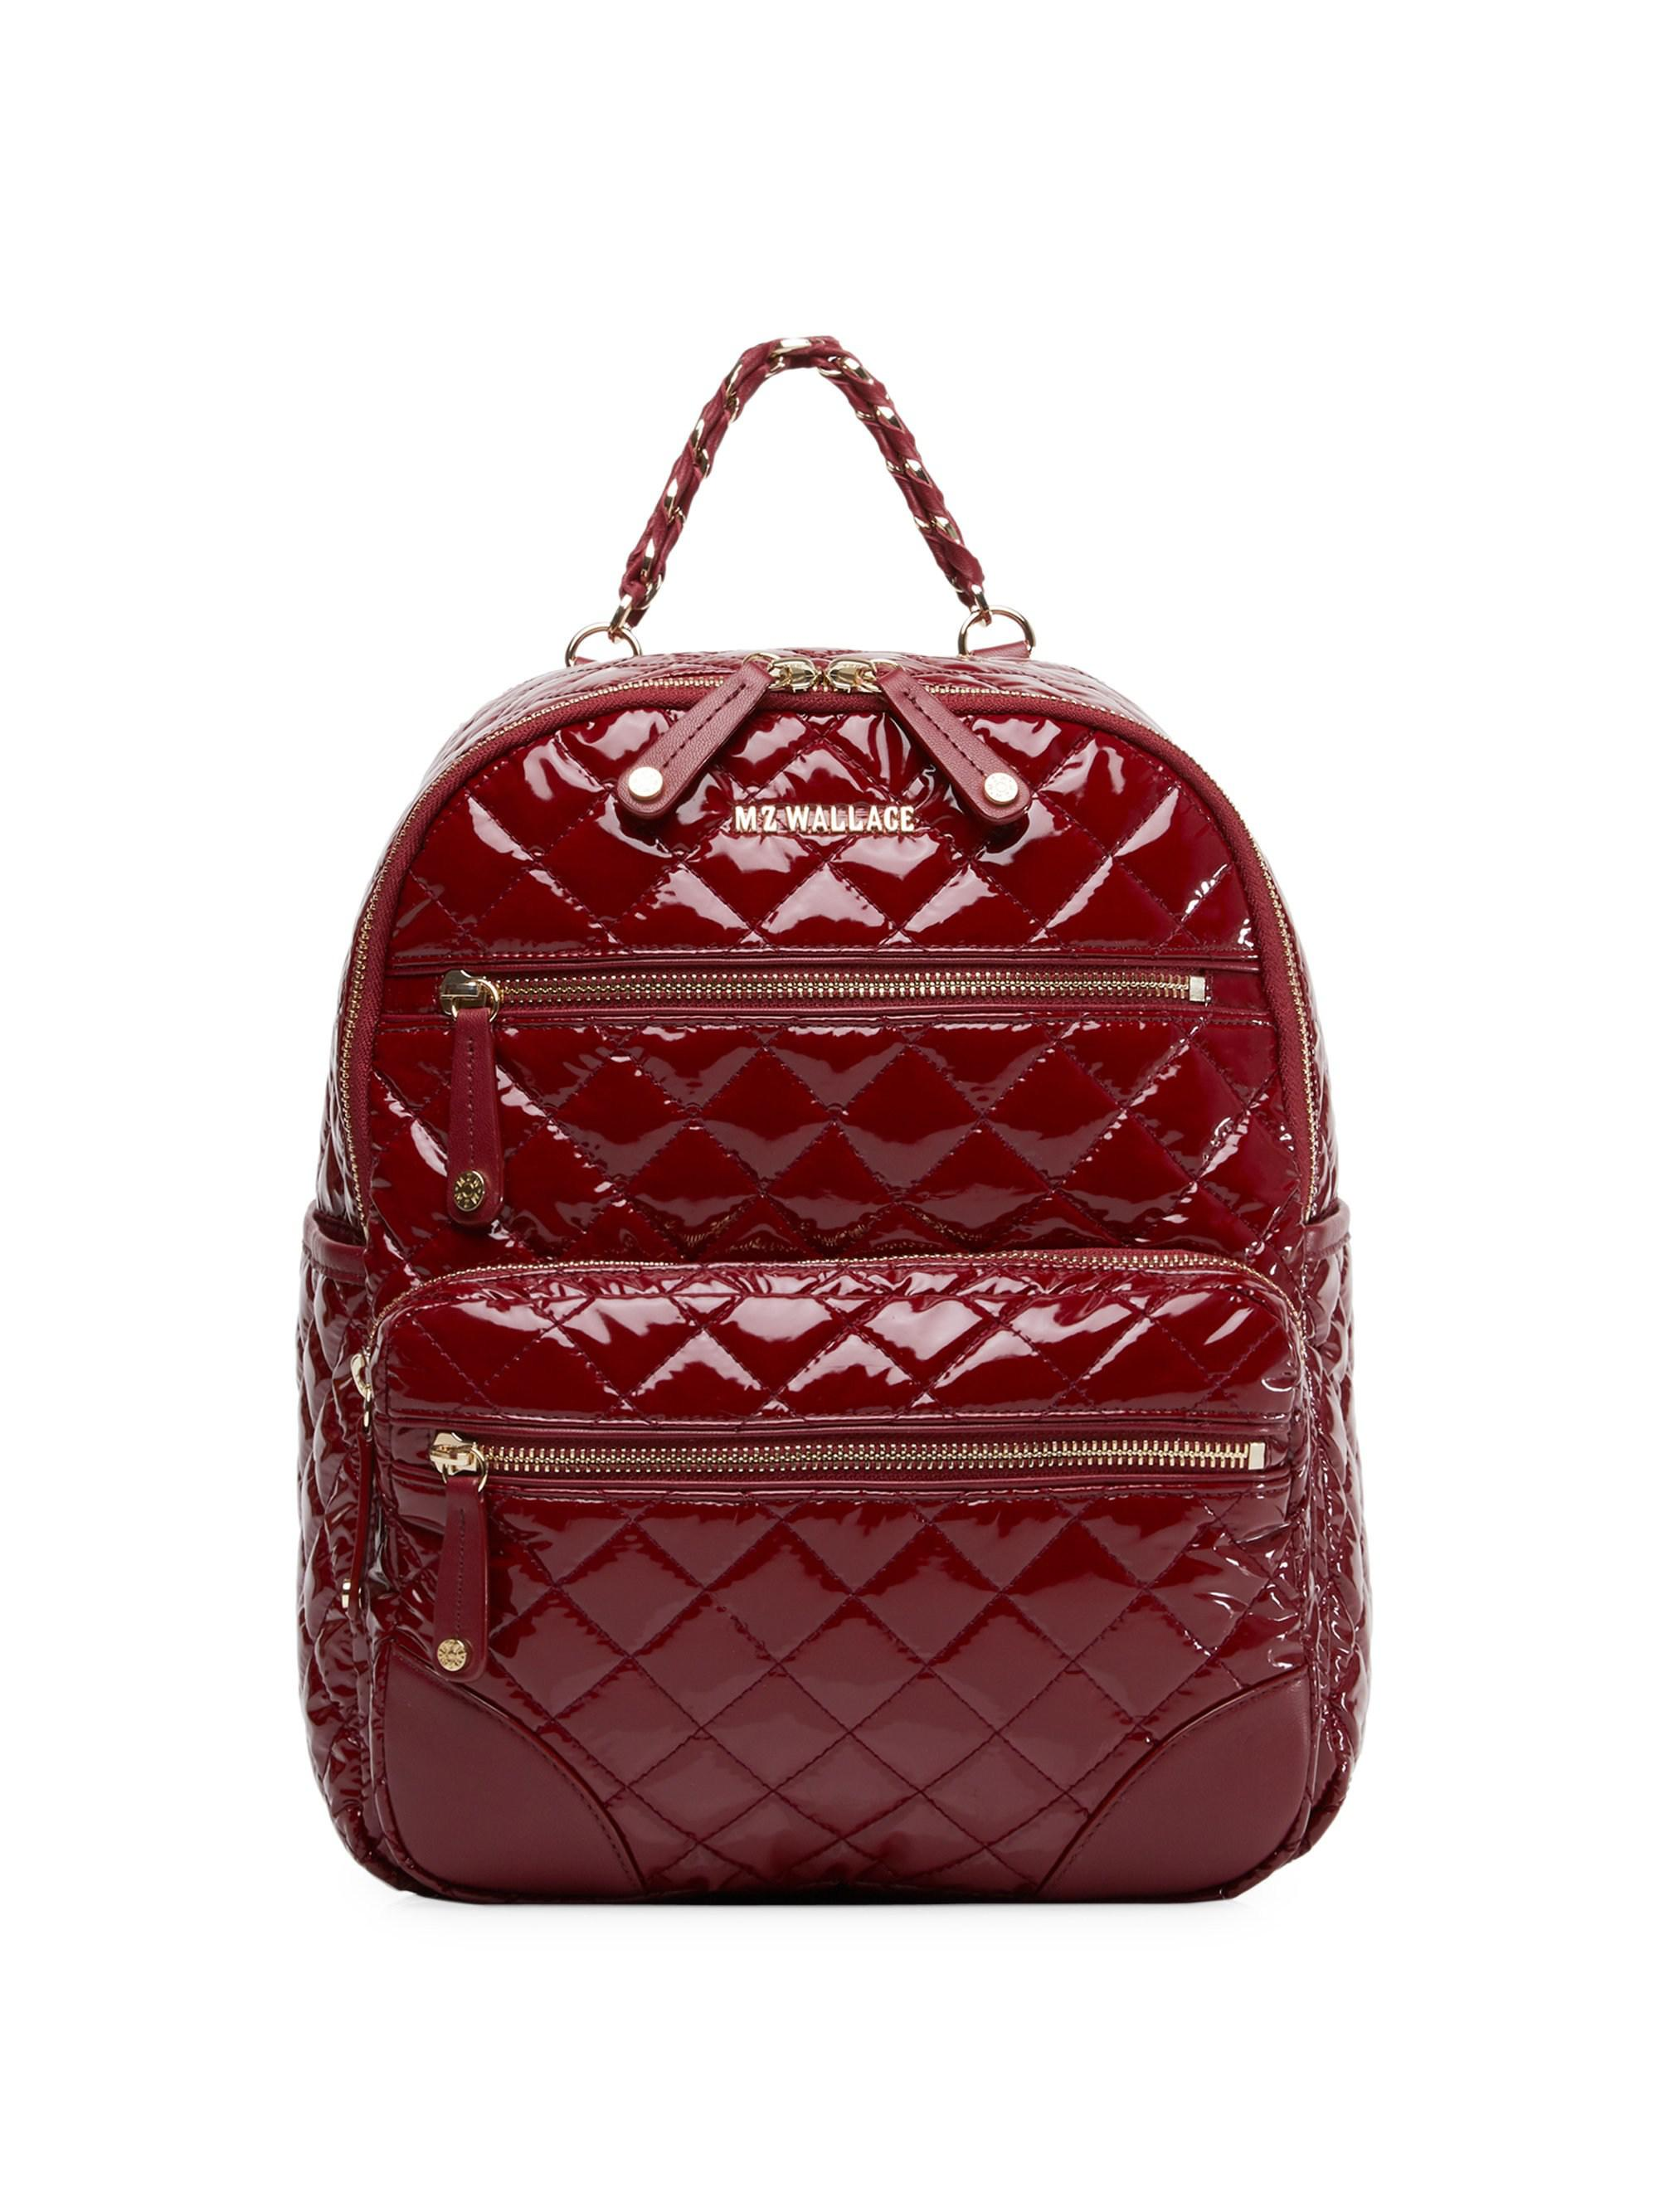 78f685b997c4 Lyst - Mz Wallace Small Crosby Backpack in Red